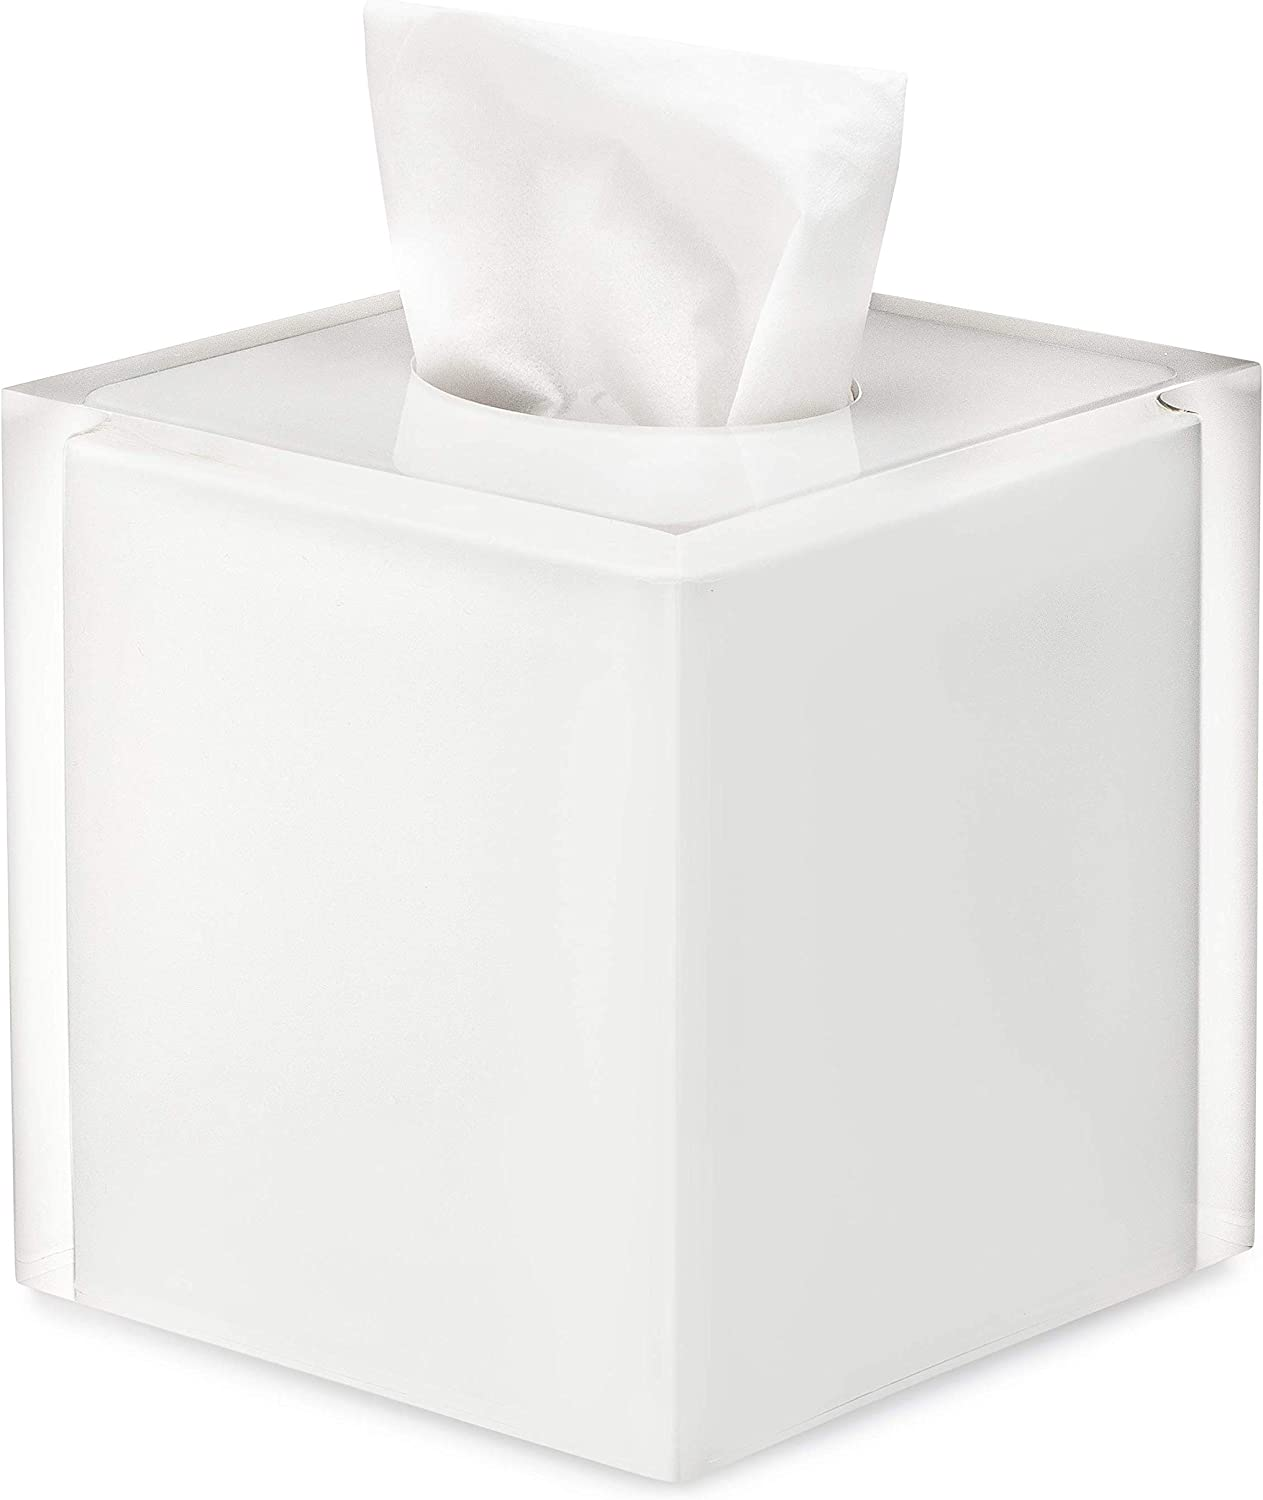 Essentra Home White and Transparent Square Tissue Cover Box from The Cristallino Collection